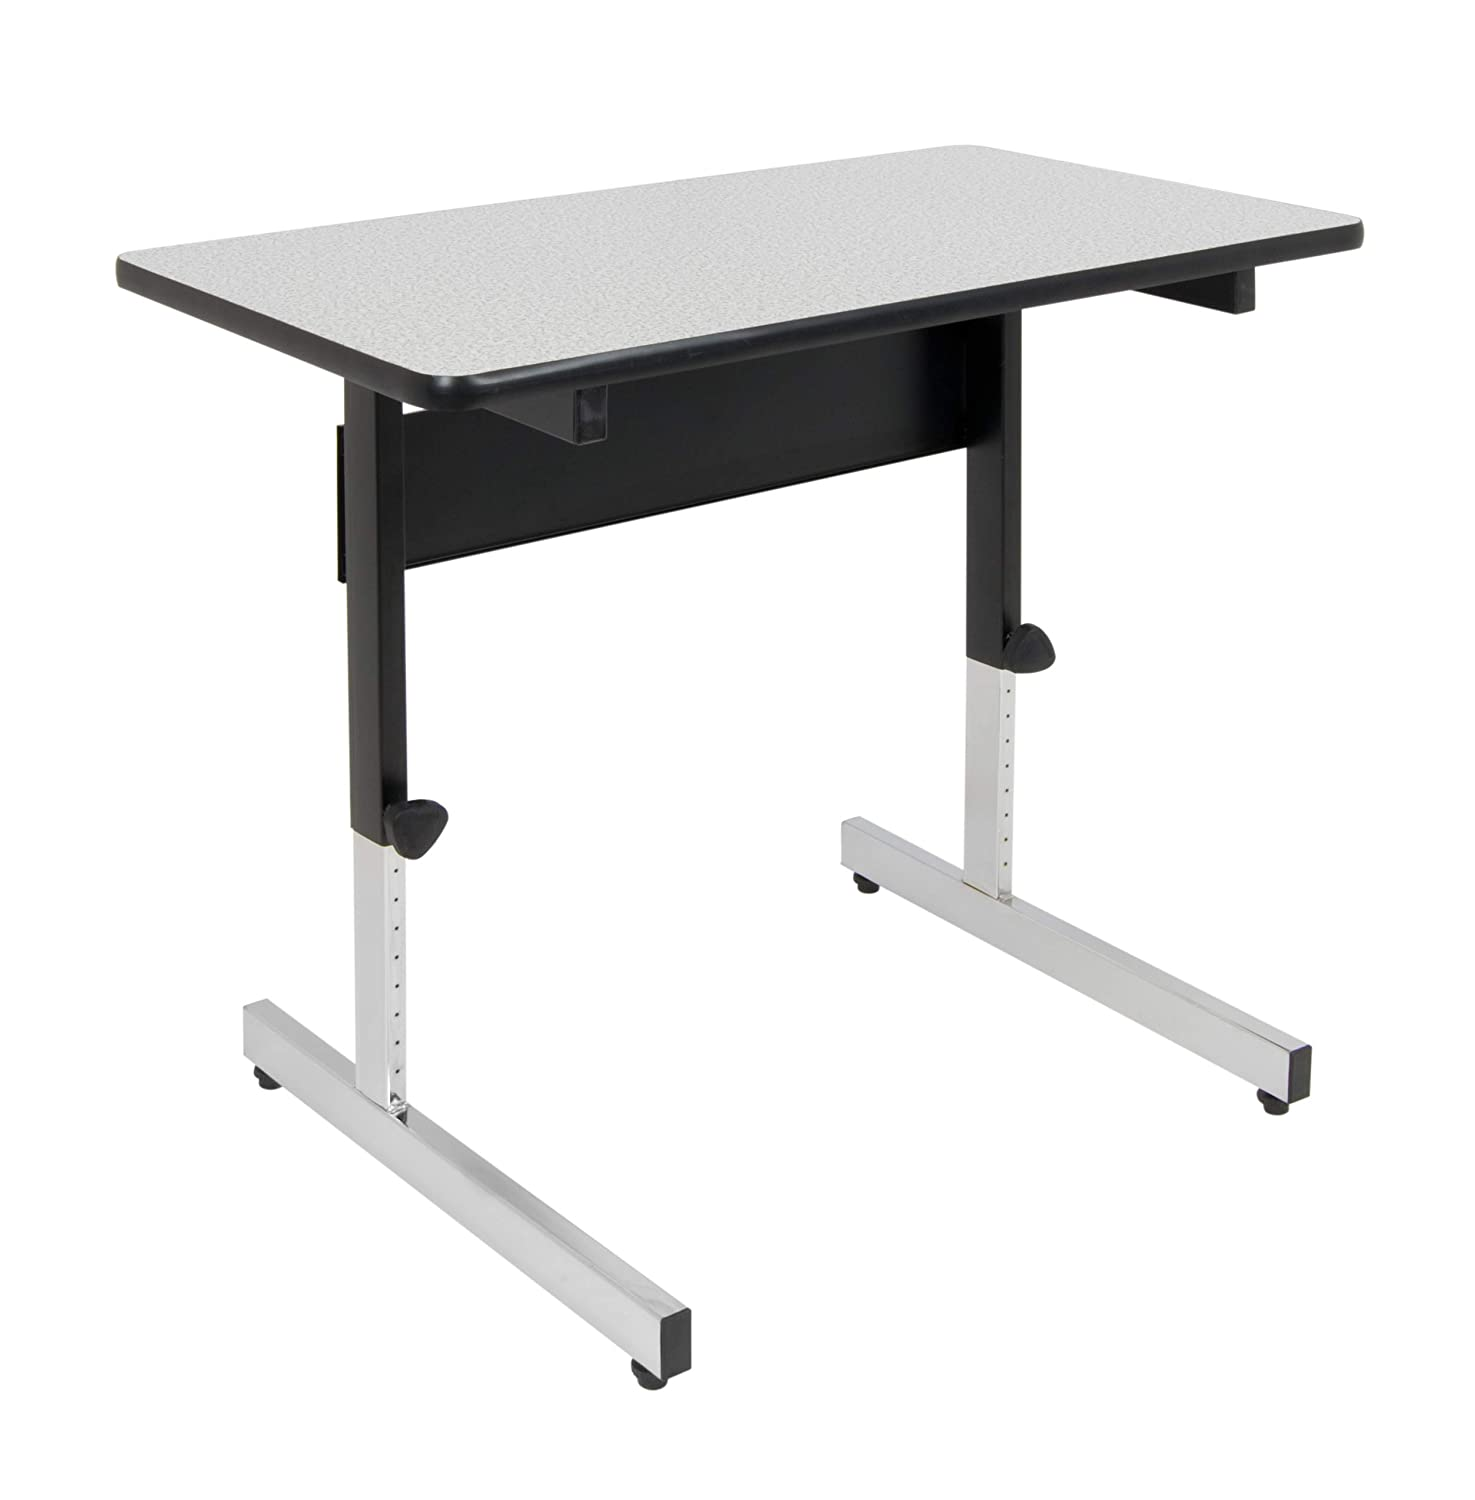 "Calico Designs 410381.0 Adapta Table, 36"", Black/Spatter Gray"